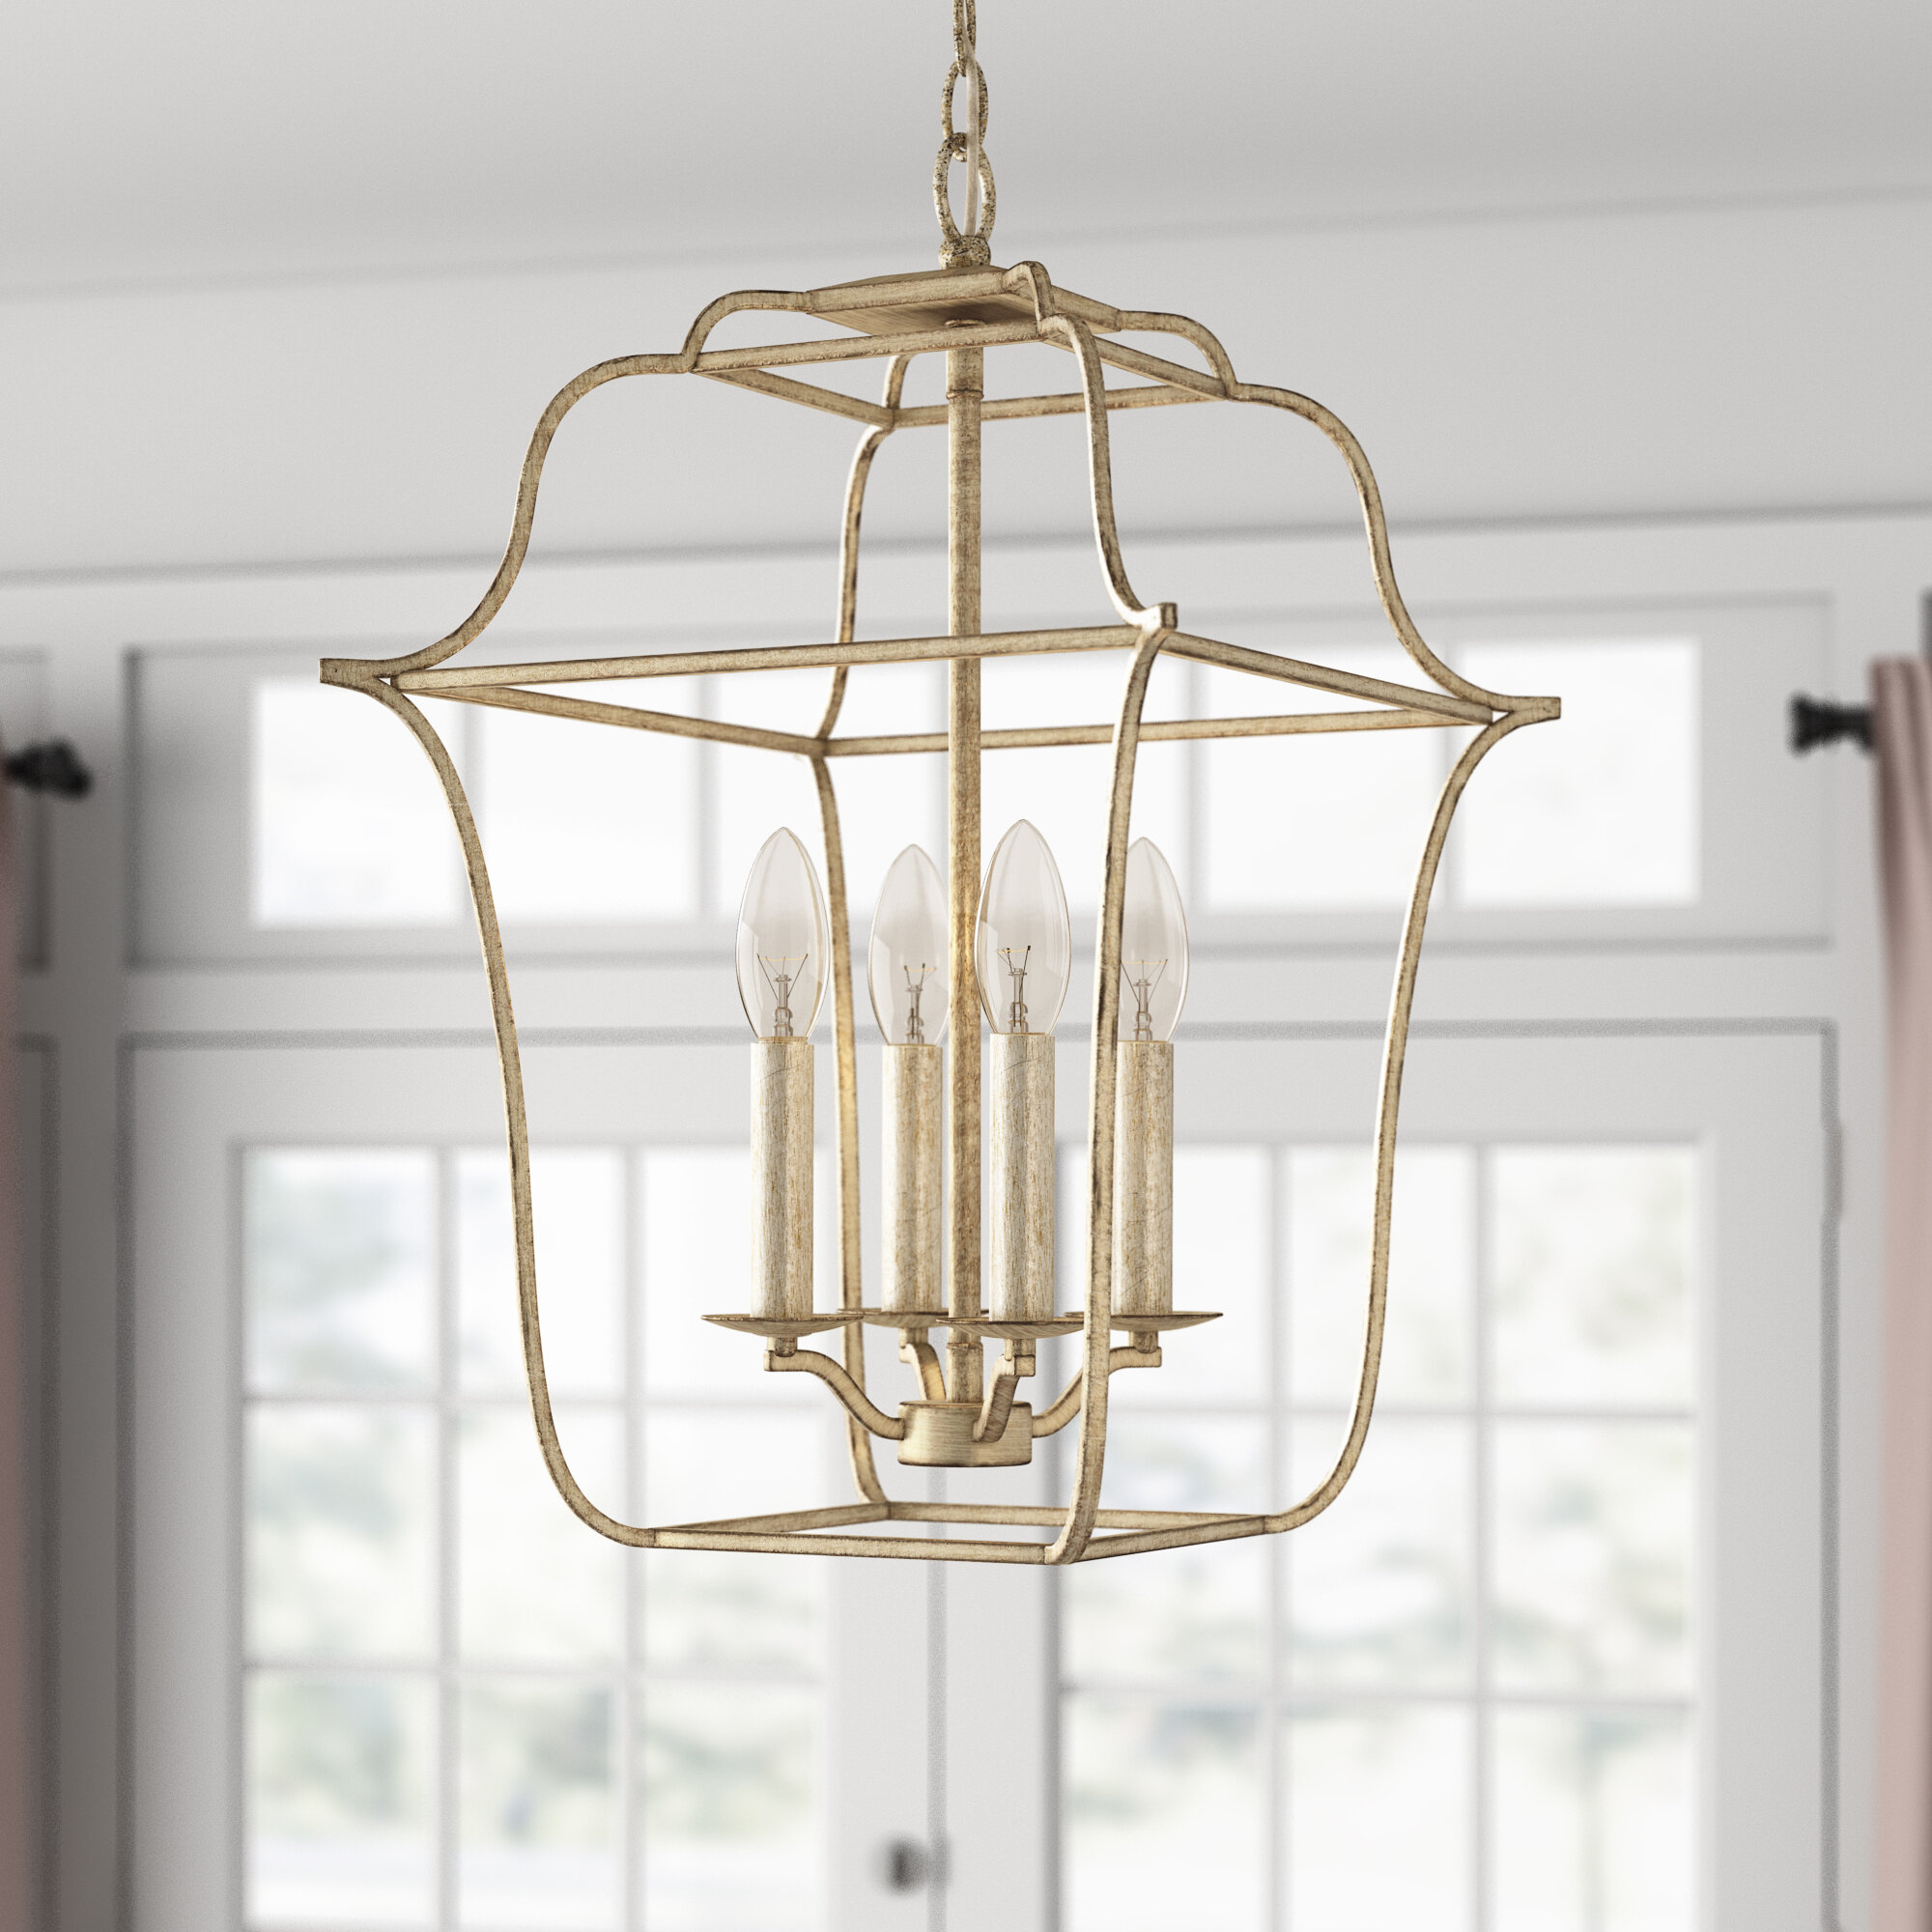 Chloe 4 Light Lantern Geometric Pendant Within Armande 4 Light Lantern Drum Pendants (View 7 of 30)